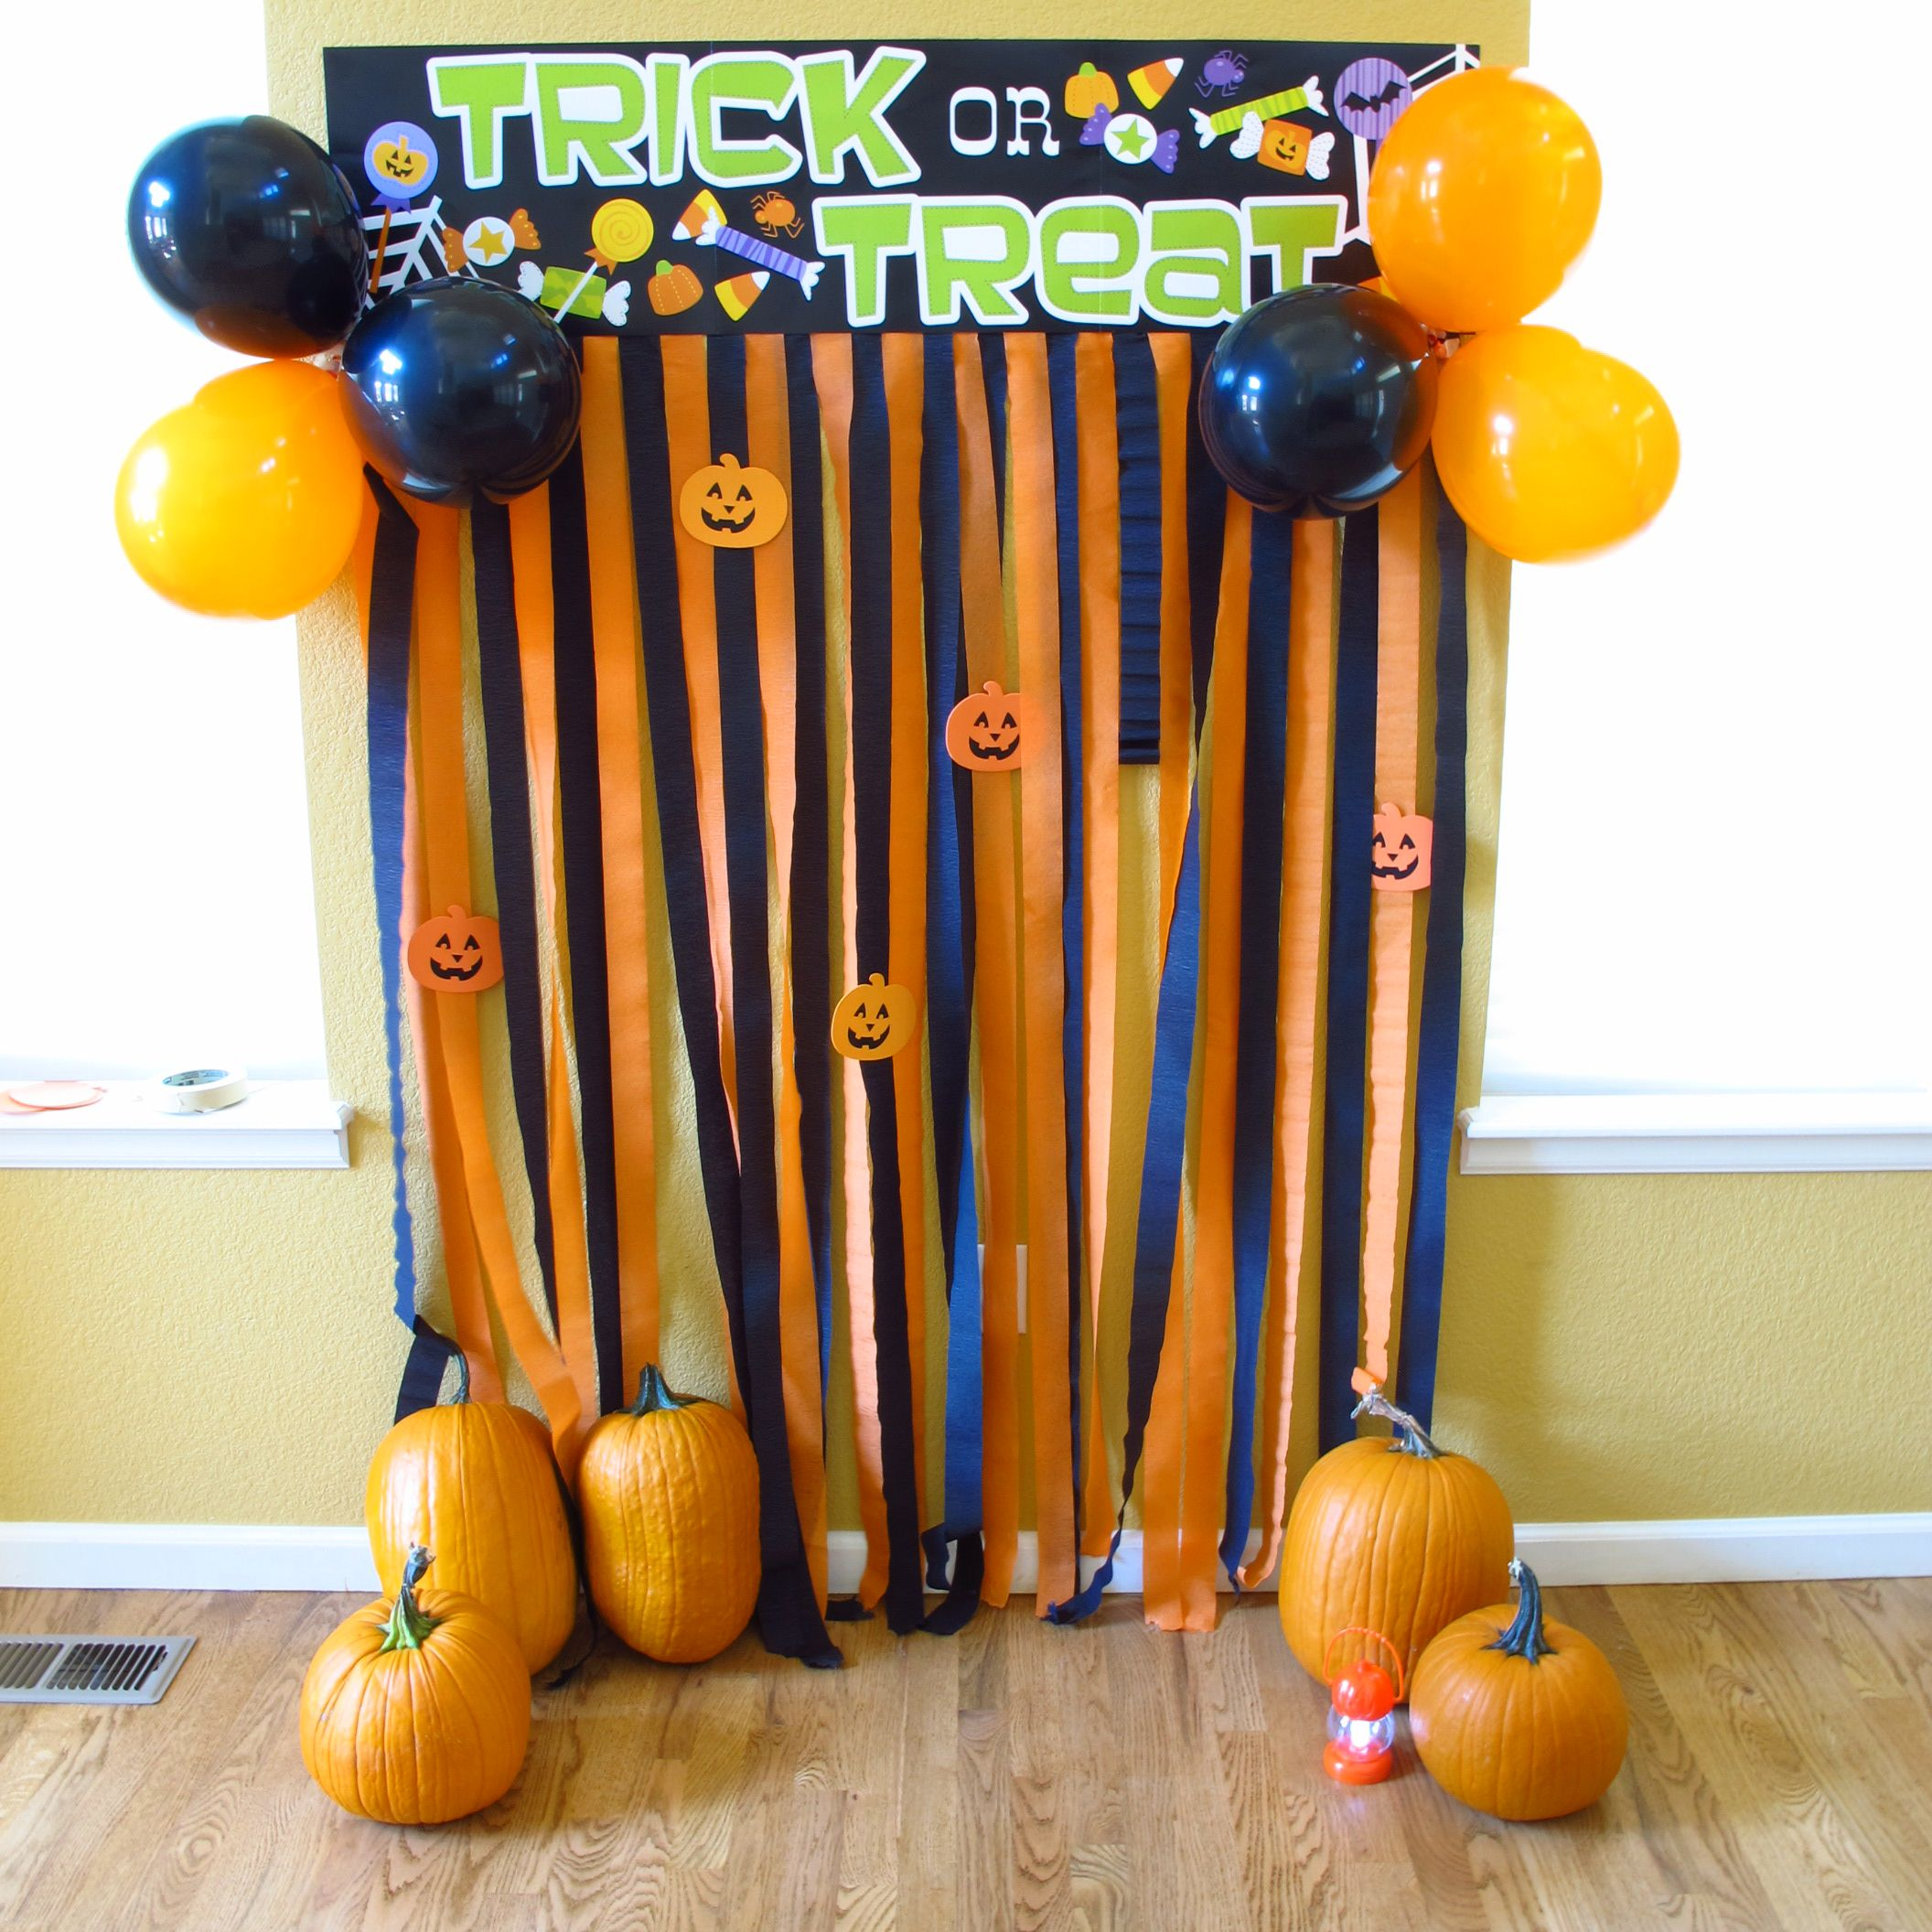 Halloween party decoration ideas diy - Cute Halloween Photo Booth Backdrop I D Use A Small Bench